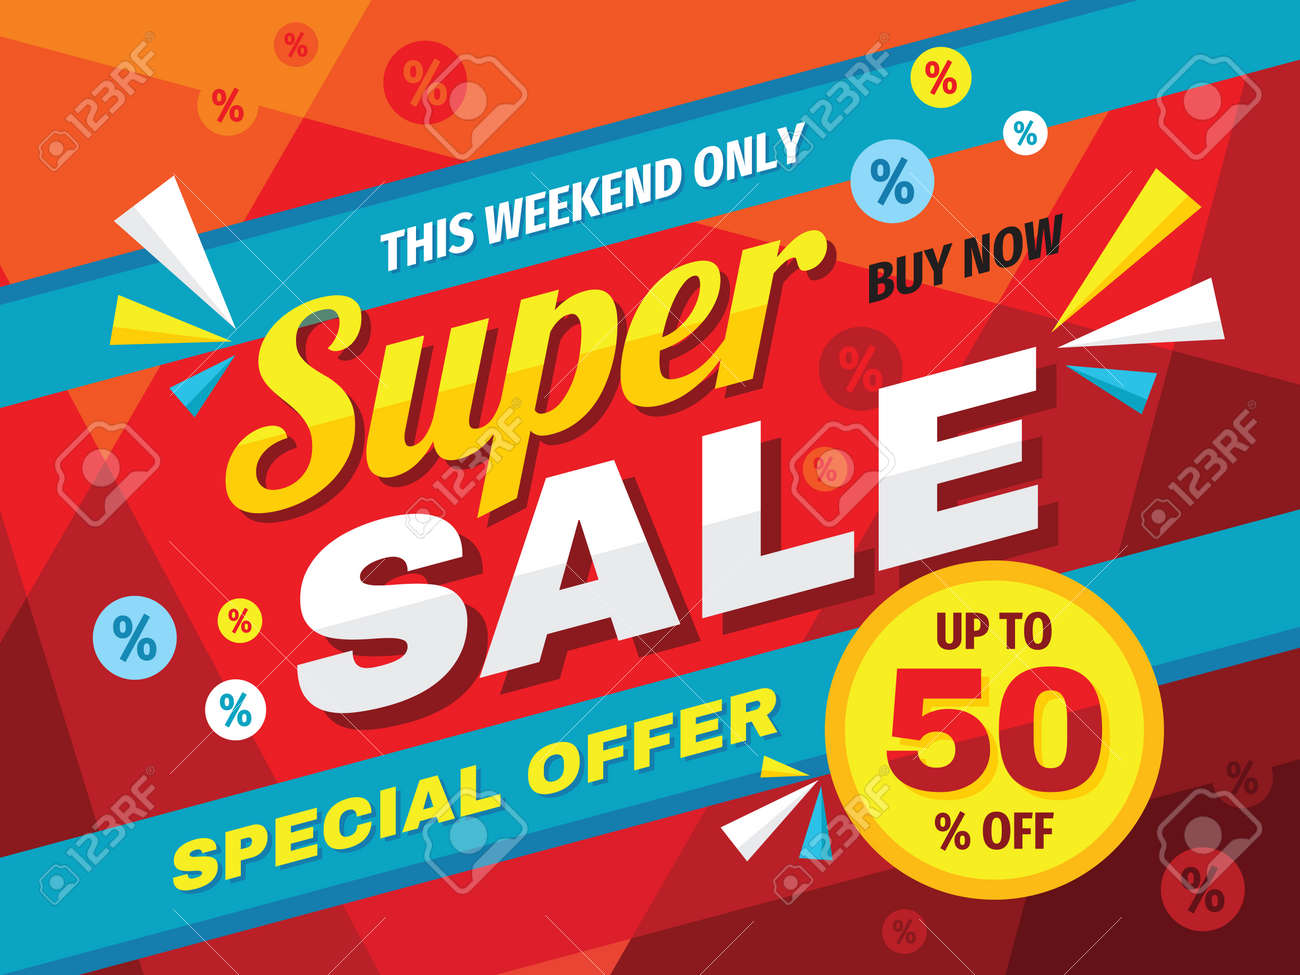 Super sale horizontal banner design. Abstract promotion discount up to 50% off poster. Special offer, this weekend only, buy now. Advertising decorative vector layout. Clearance retail tag. Marketing. - 154419860